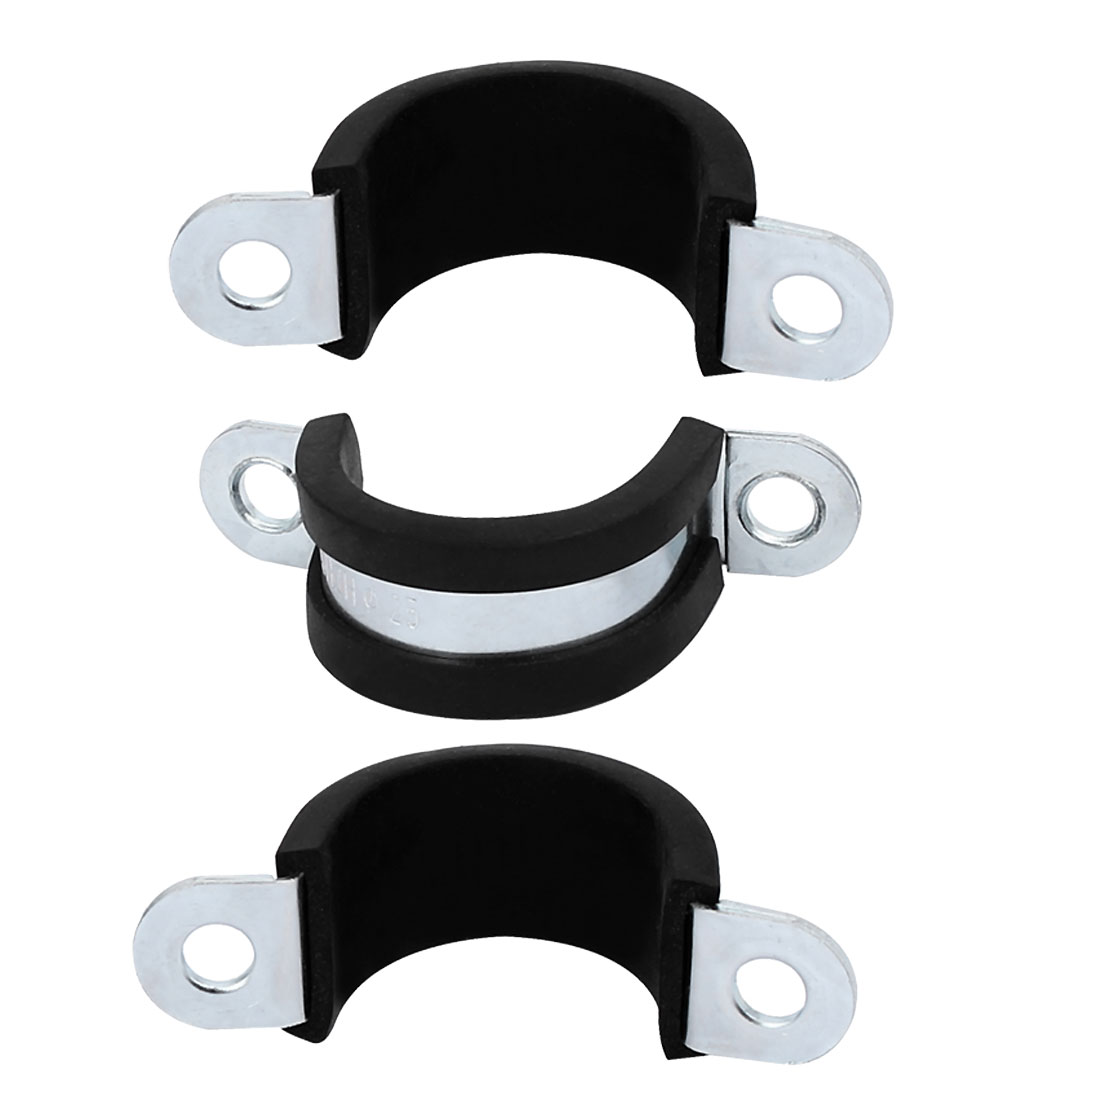 M25 EPDM Rubber Lined U Shaped Pipe Tube Strap Clamps Clips Fasteners 3pcs